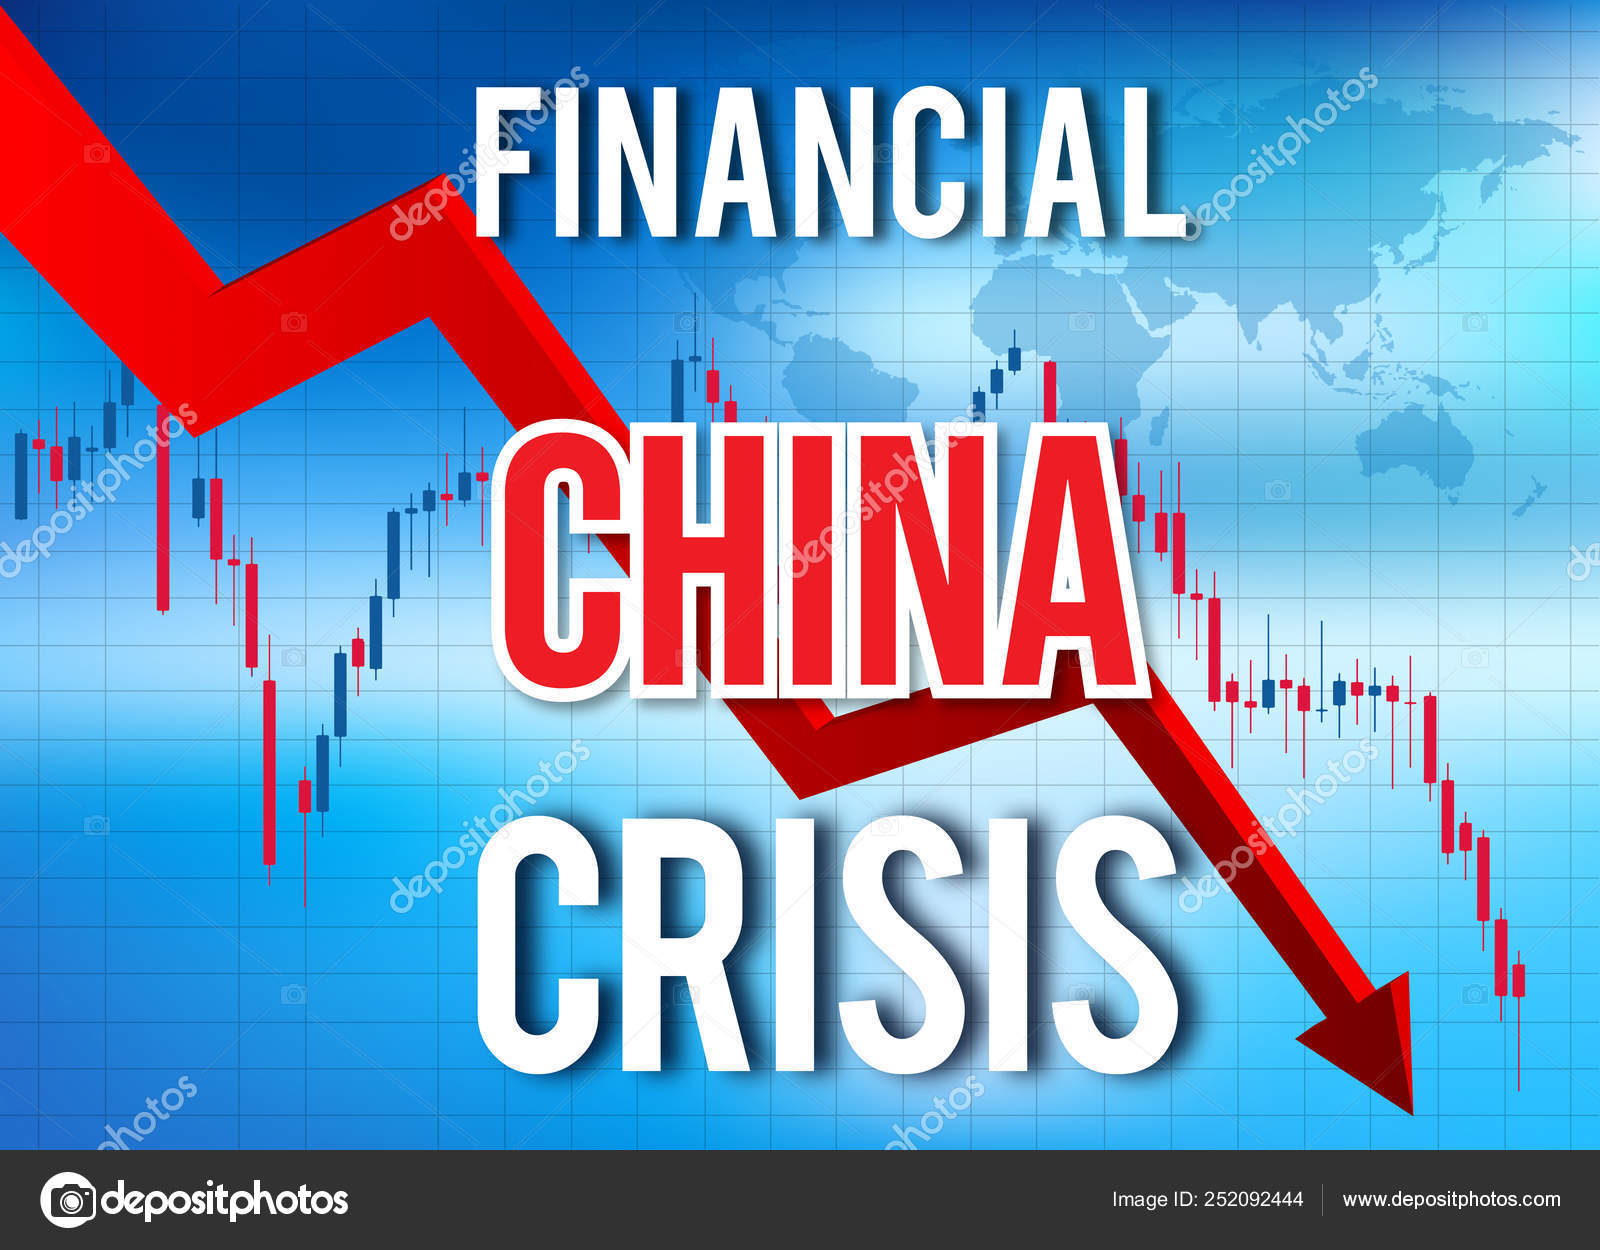 https://st4.depositphotos.com/4035913/25209/i/1600/depositphotos_252092444-stock-photo-china-financial-crisis-economic-collapse.jpg